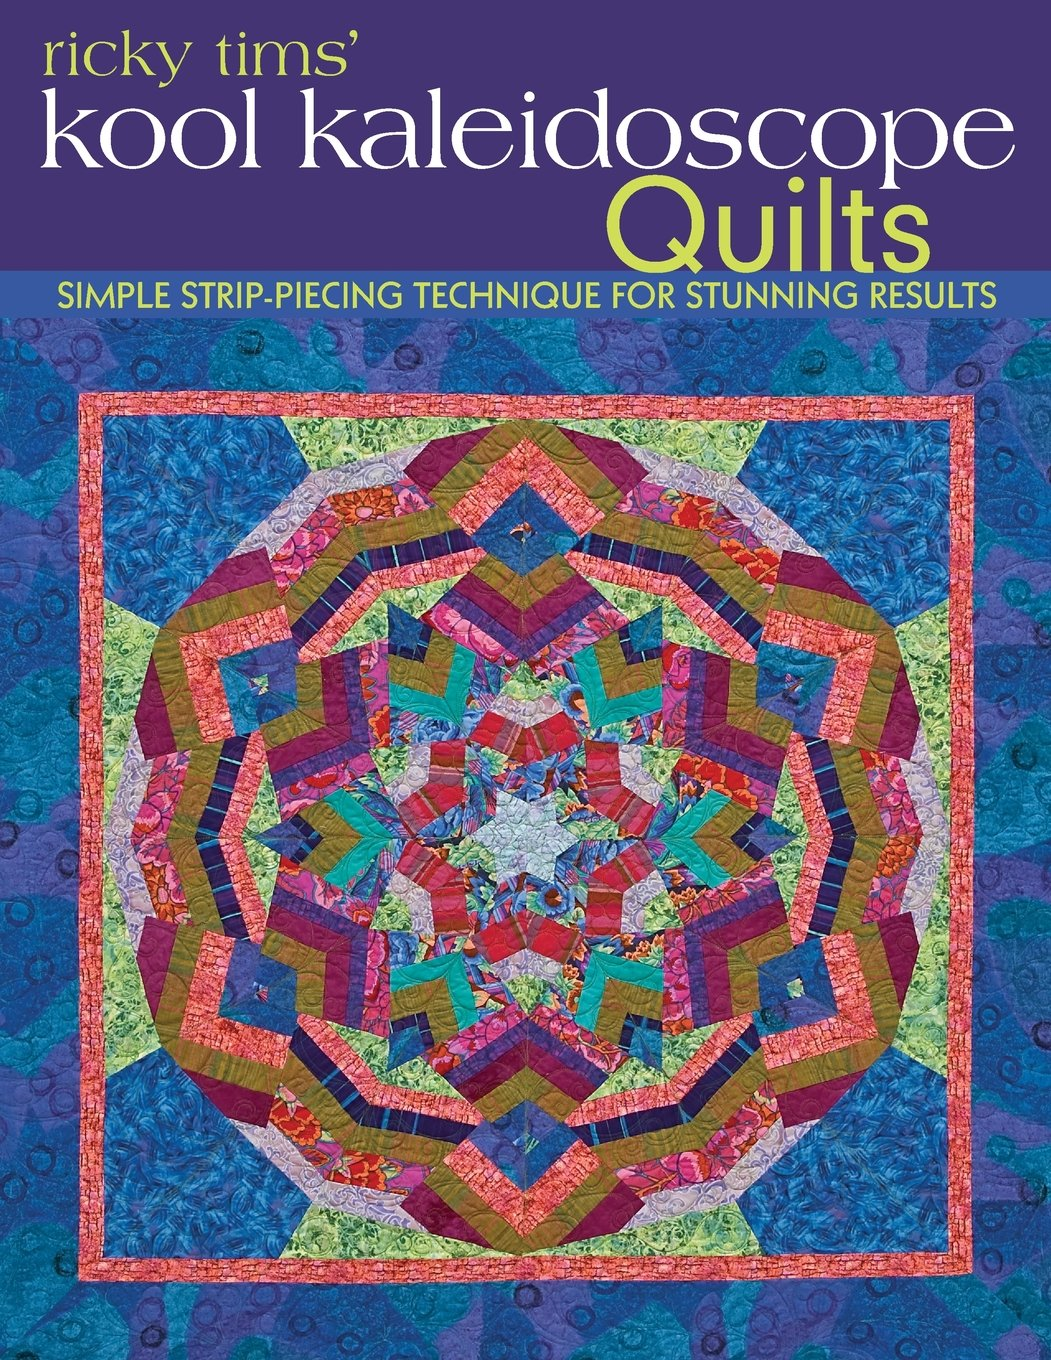 Read Online Ricky Tims' Kool Kaleidoscope Quilts: Simple Strip-Piecing Technique for Stunning Results pdf epub